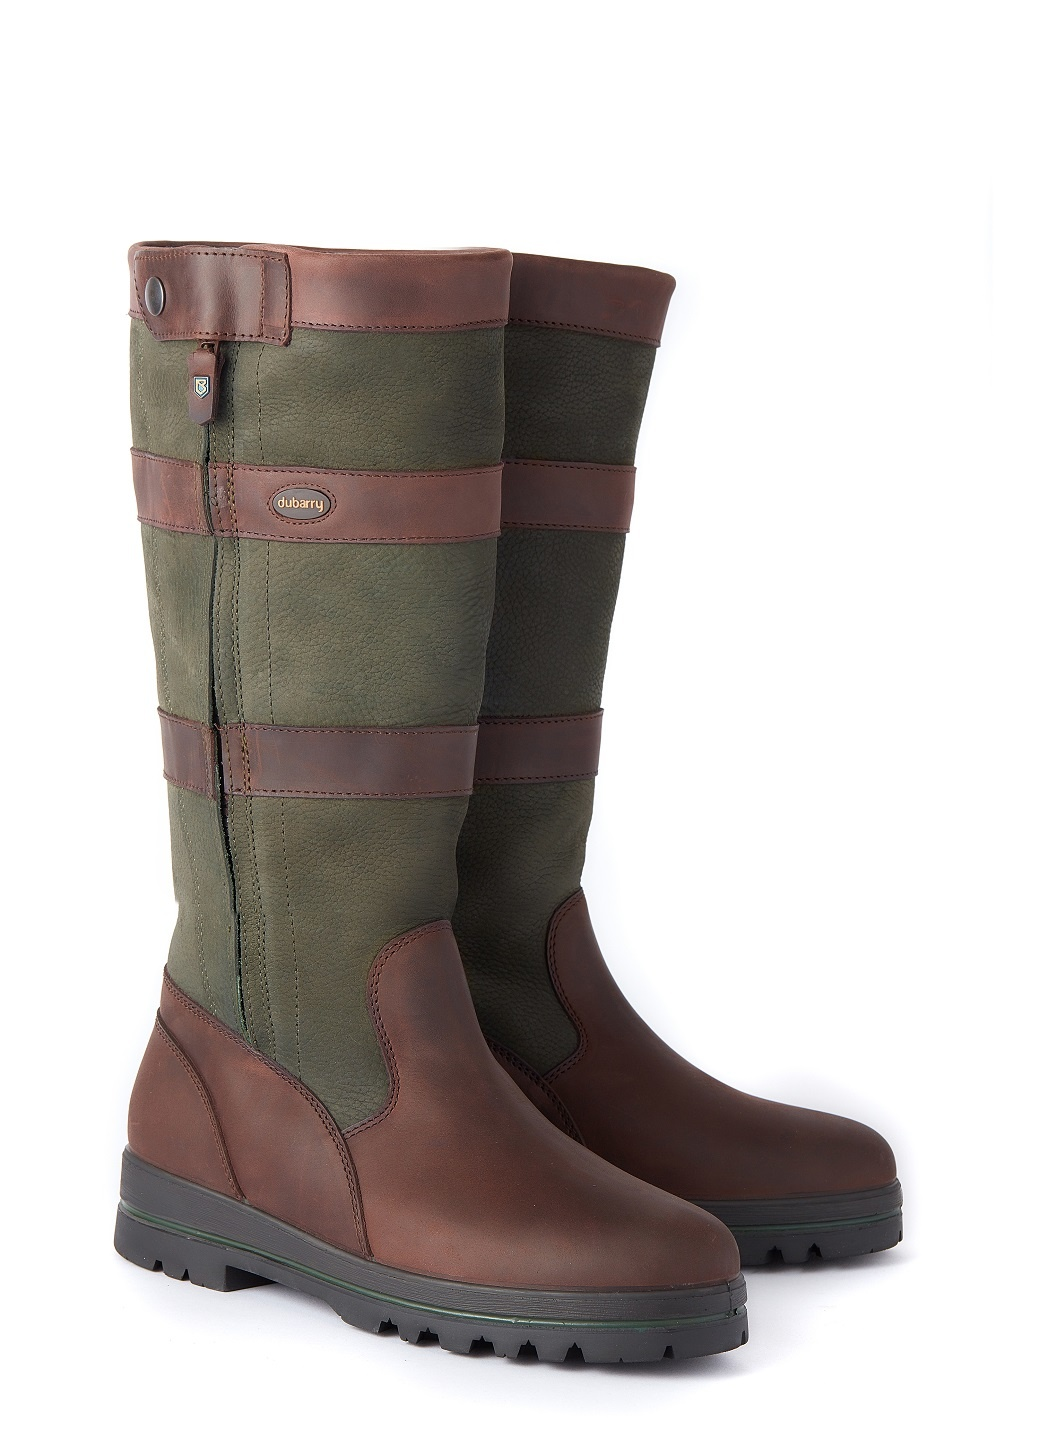 Dubarry Wexford - Ivy-1